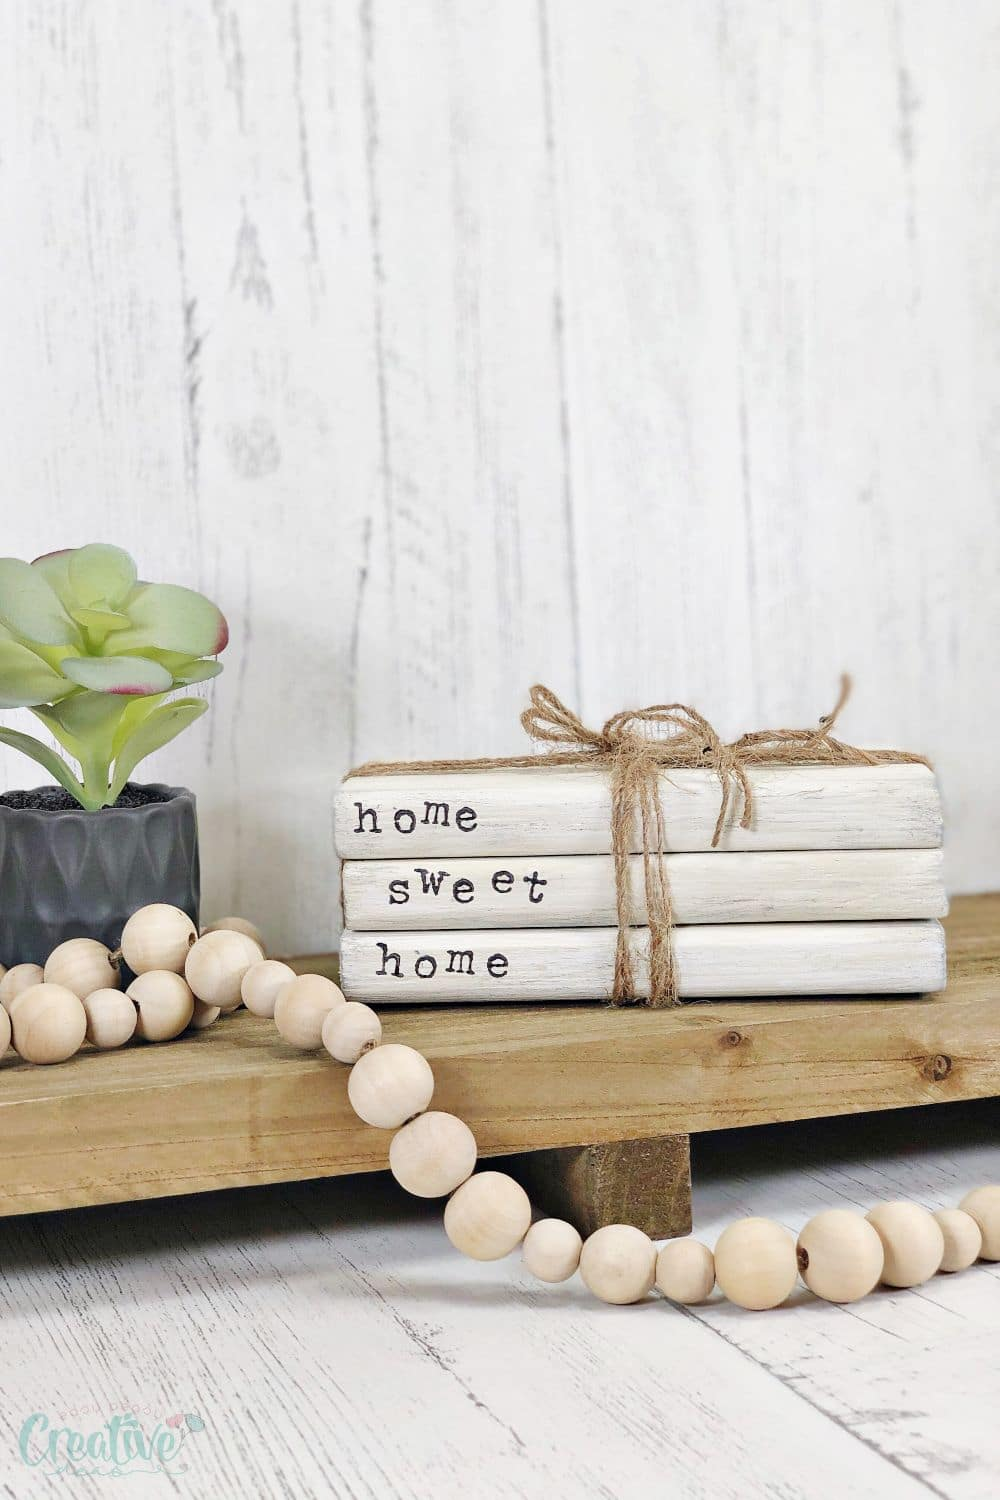 Image of white wood book stacks with letter stamps